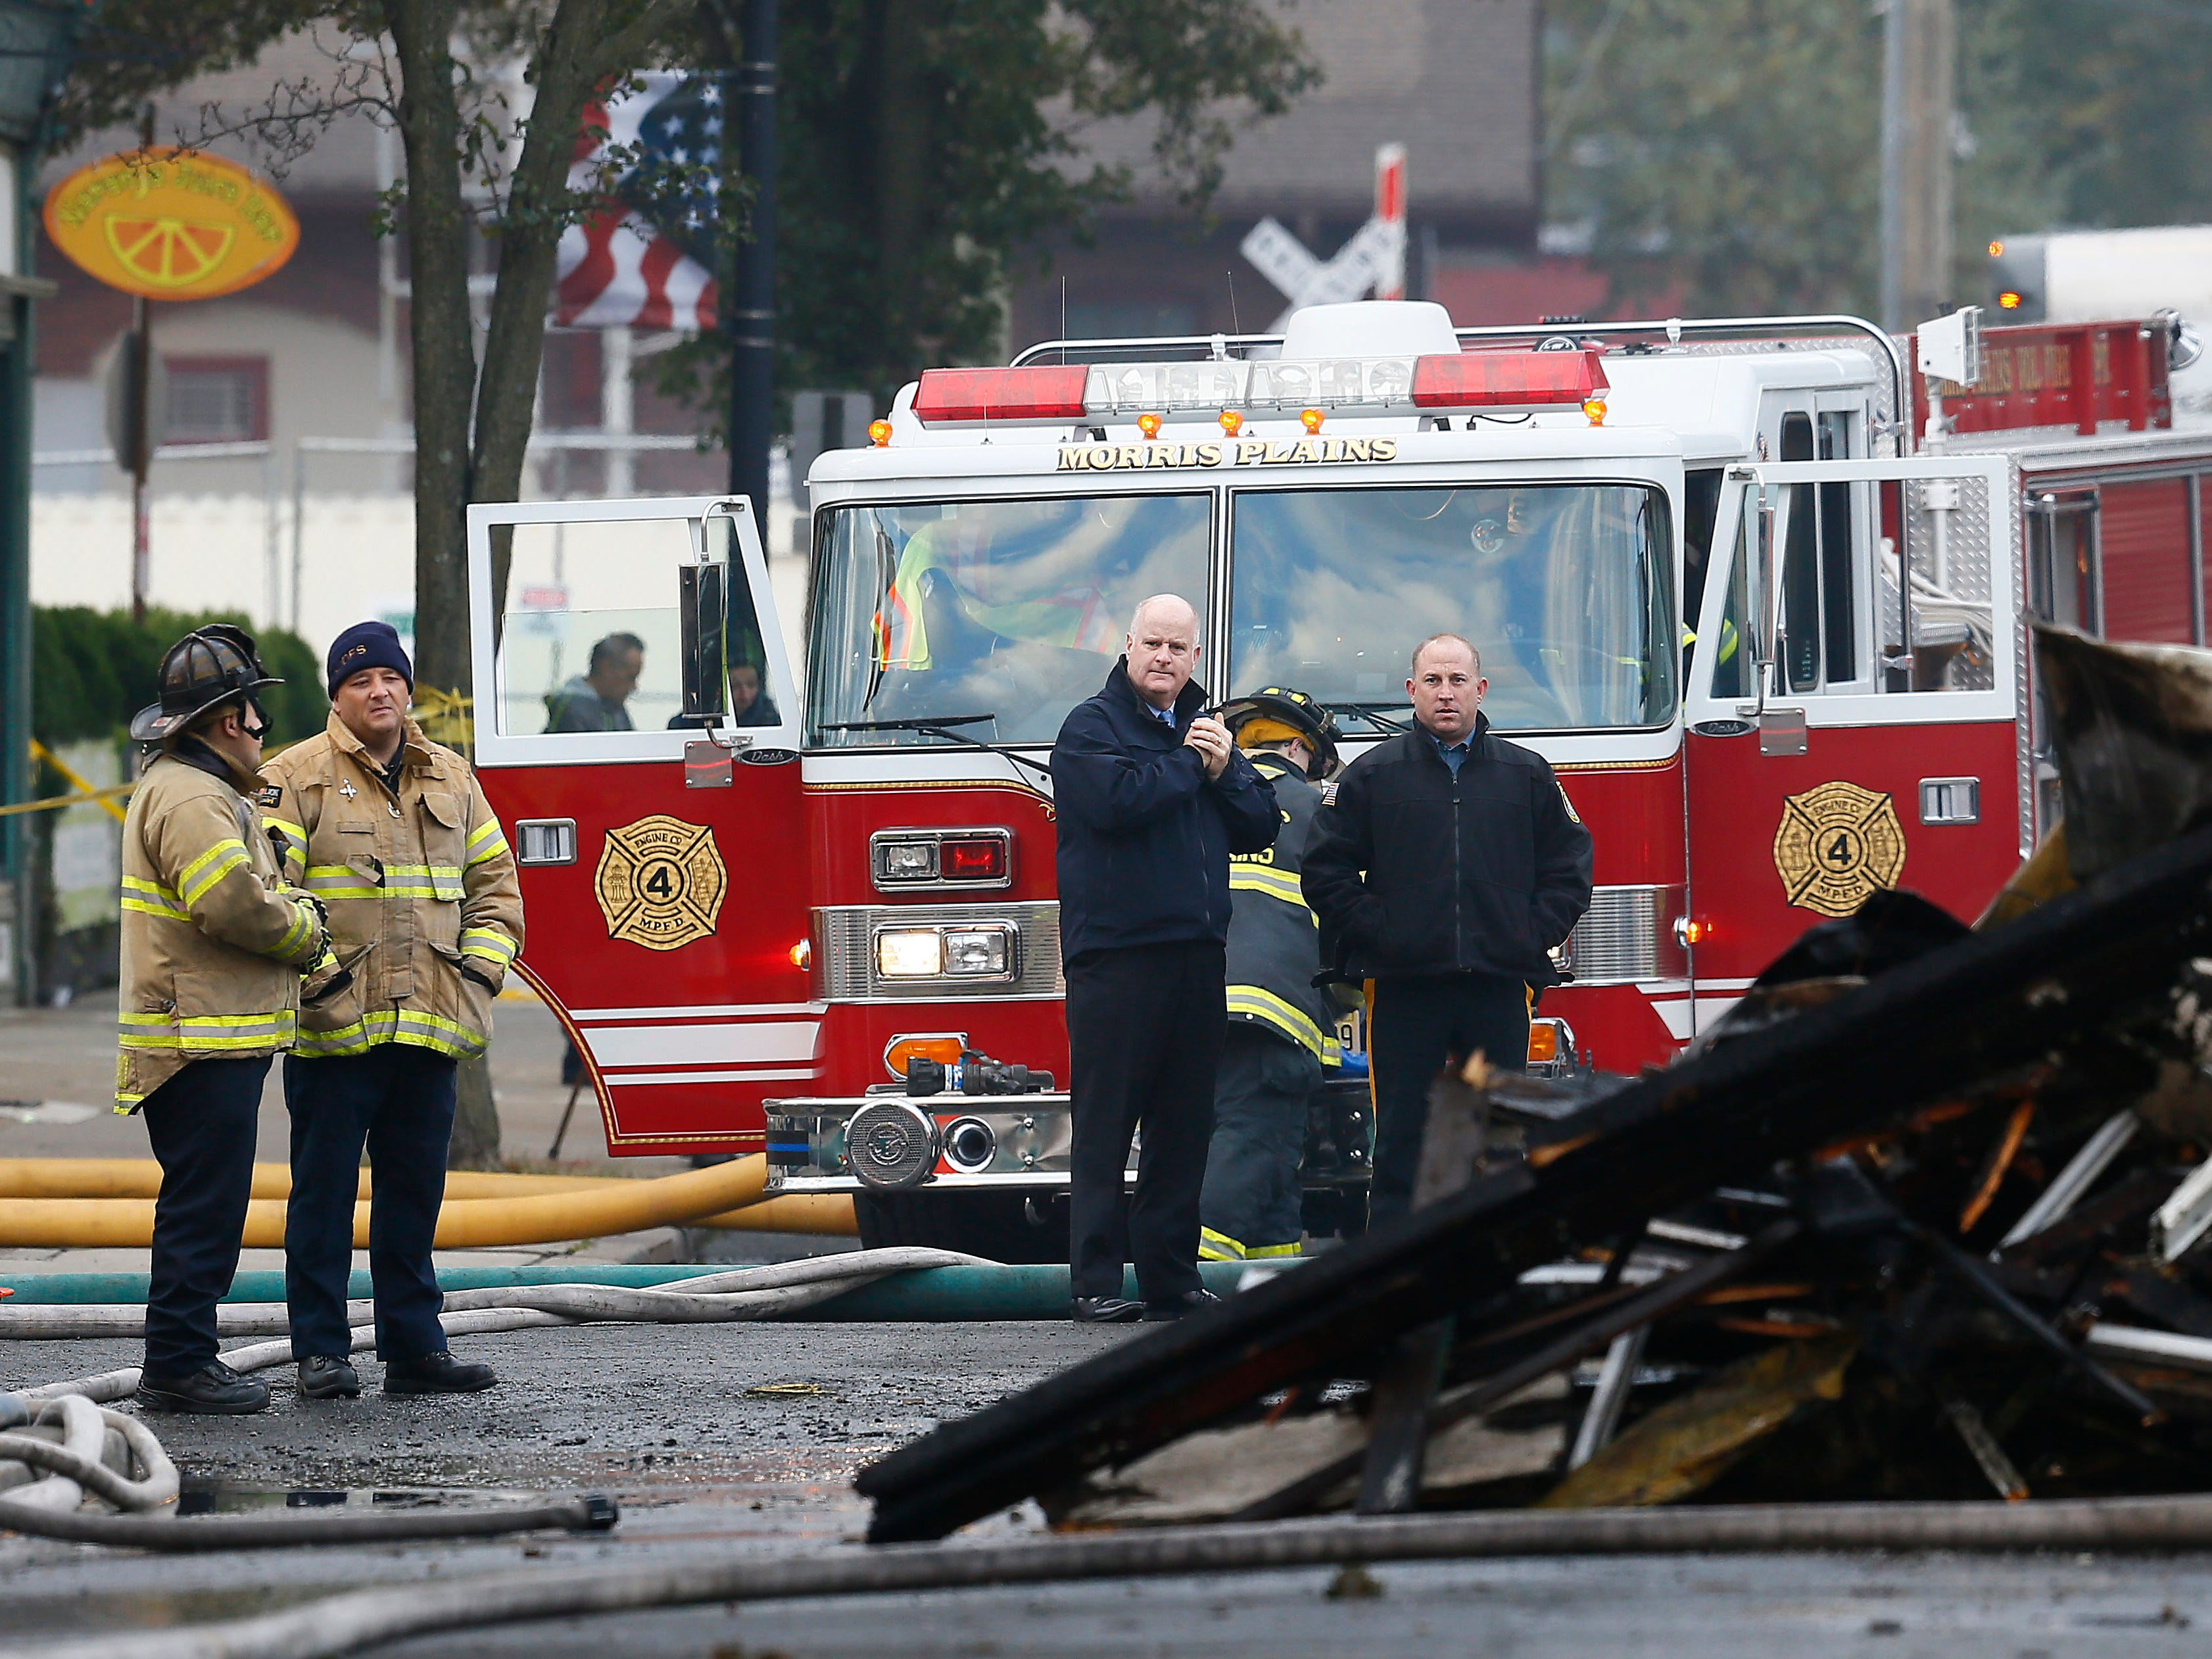 Morris County Sheriff James Gannon, c, at the scene of a devastating fire on North Warren Street in Dover that collapsed multiple businesses in a fast-moving, seven-alarm blaze that officials say started in the basement of Barry's restaurant. The fire then spread throughout the building and to others nearby that contained businesses and apartments Displacing about 100 people from their homes. October 23, 2018, Dover, NJ